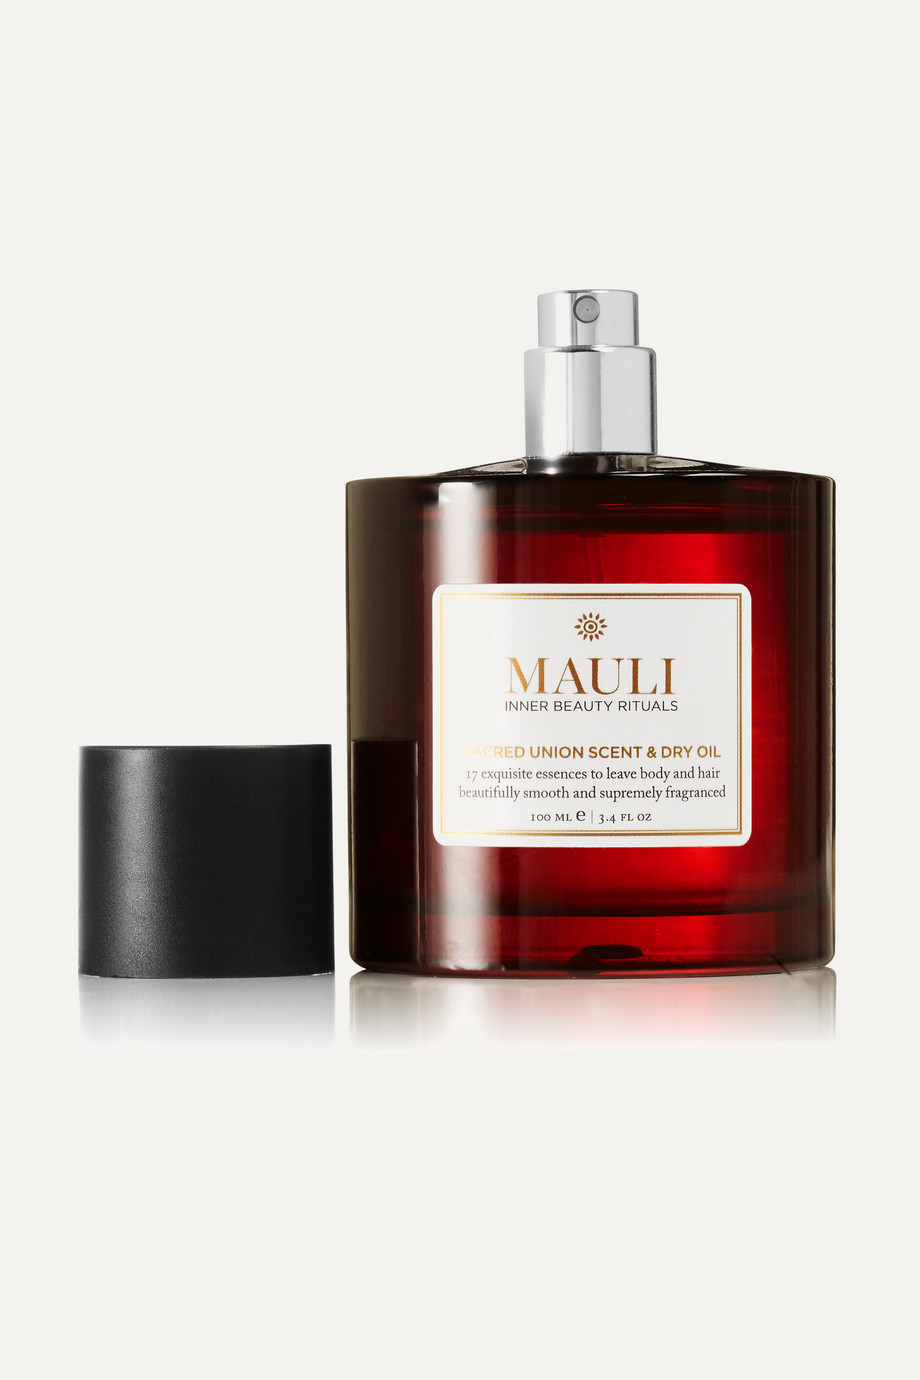 Mauli Rituals Sacred Union Scent & Dry Oil, 100ml